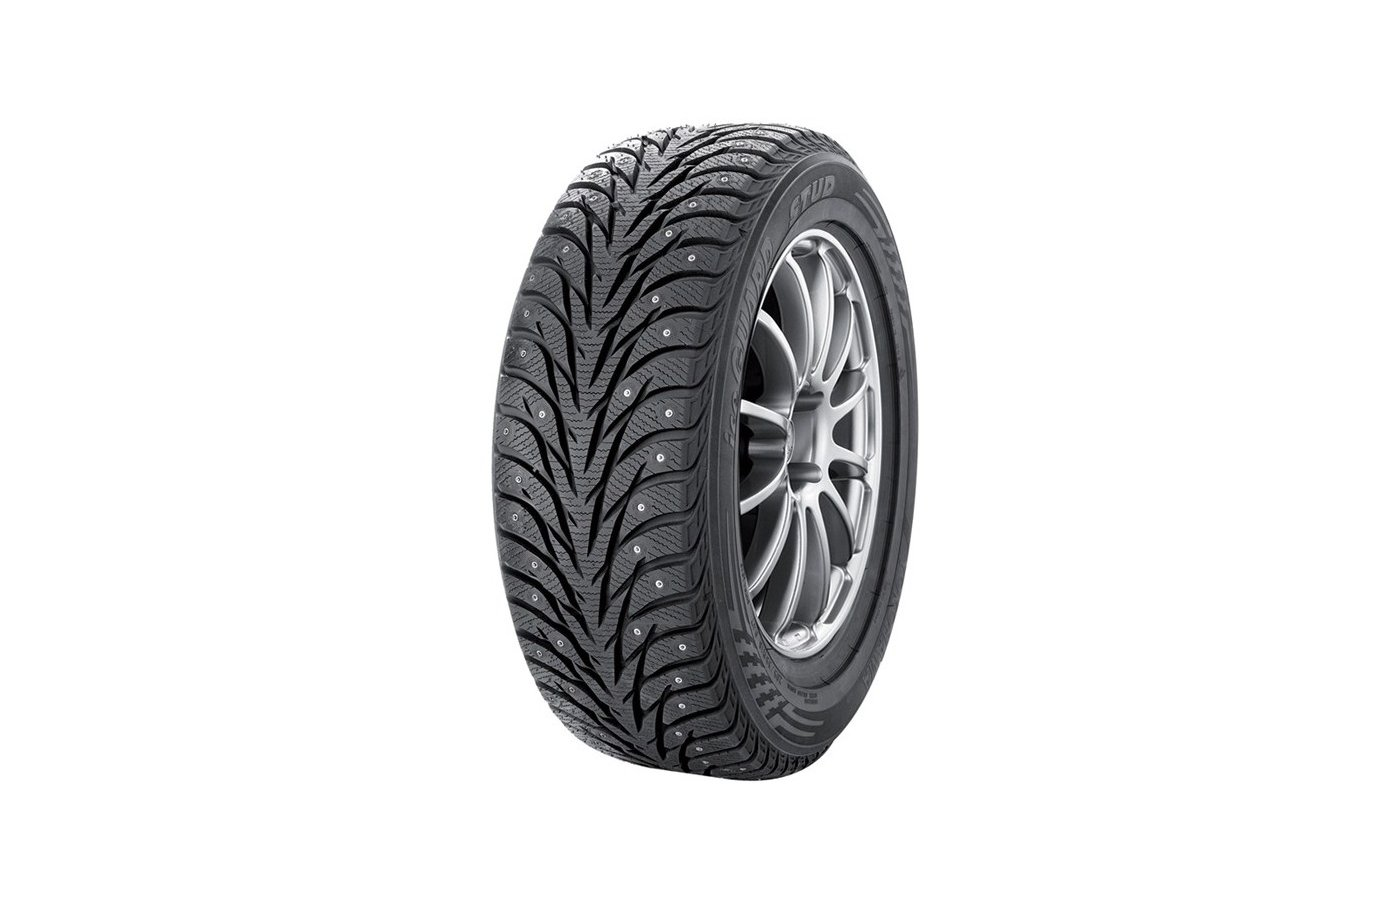 Шина Yokohama Ice Guard IG35 Plus 205/70 R15 TL 96T шип